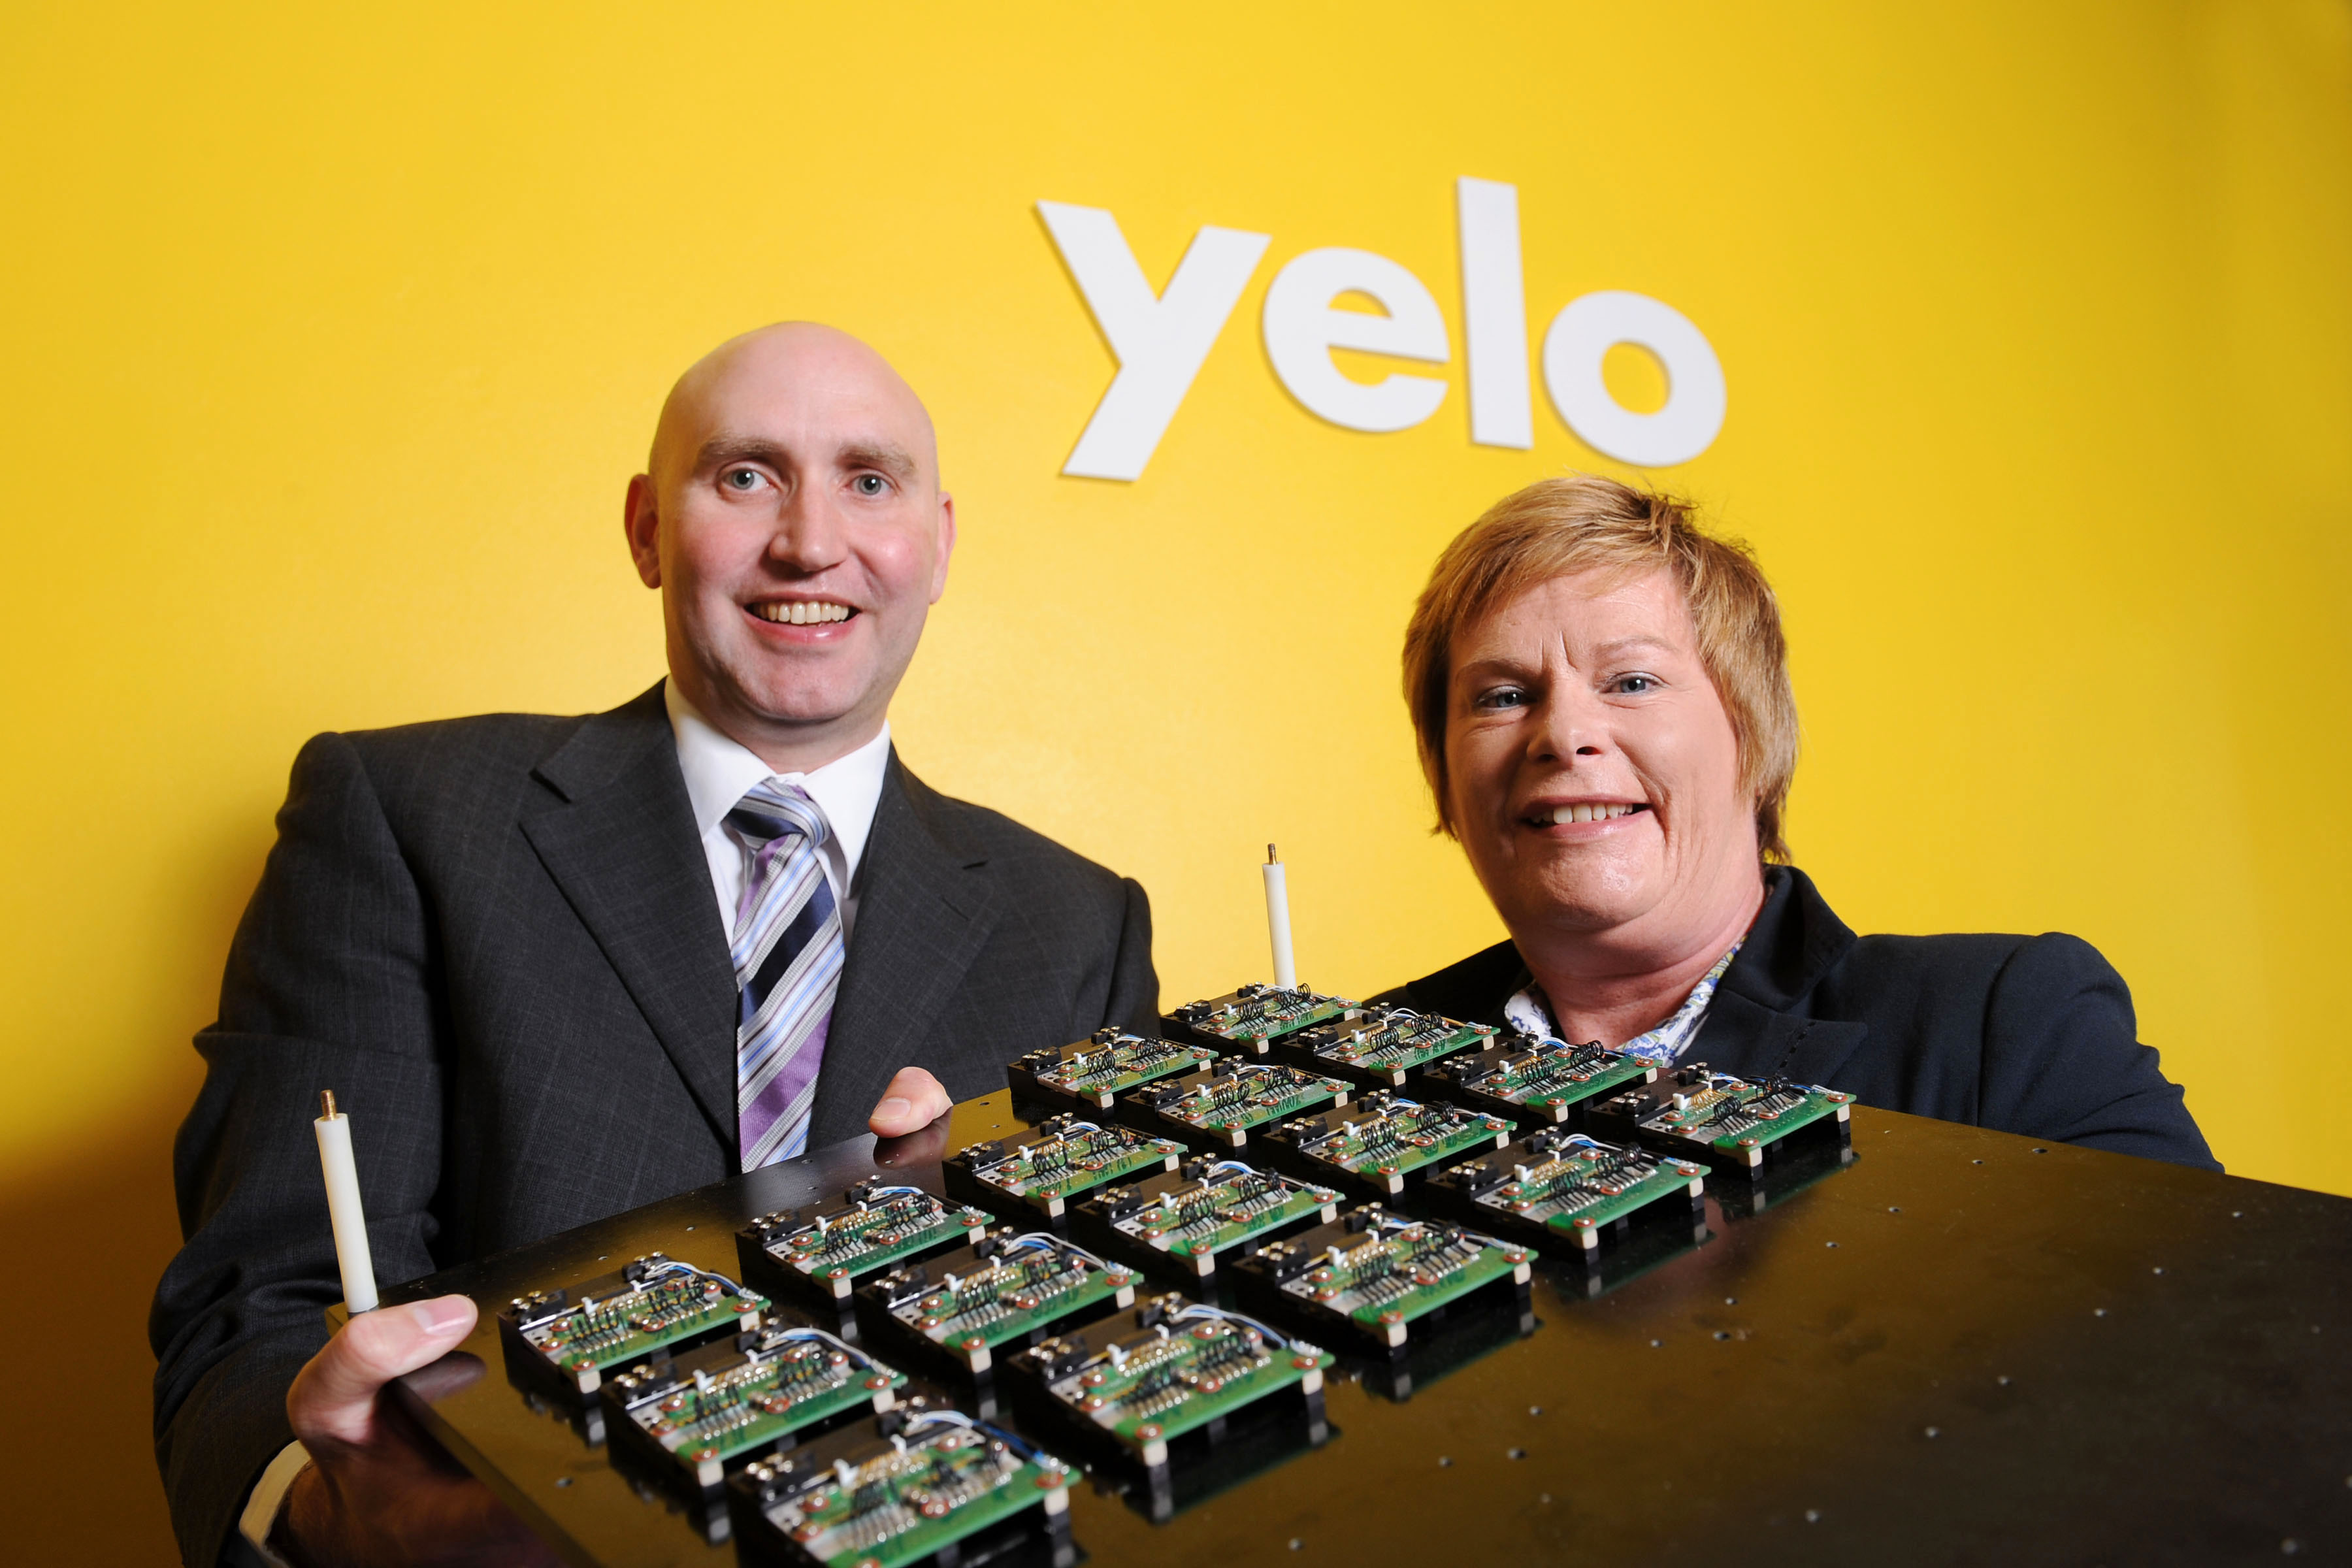 Yelo's technology helps keep YouTube and Facebook in business